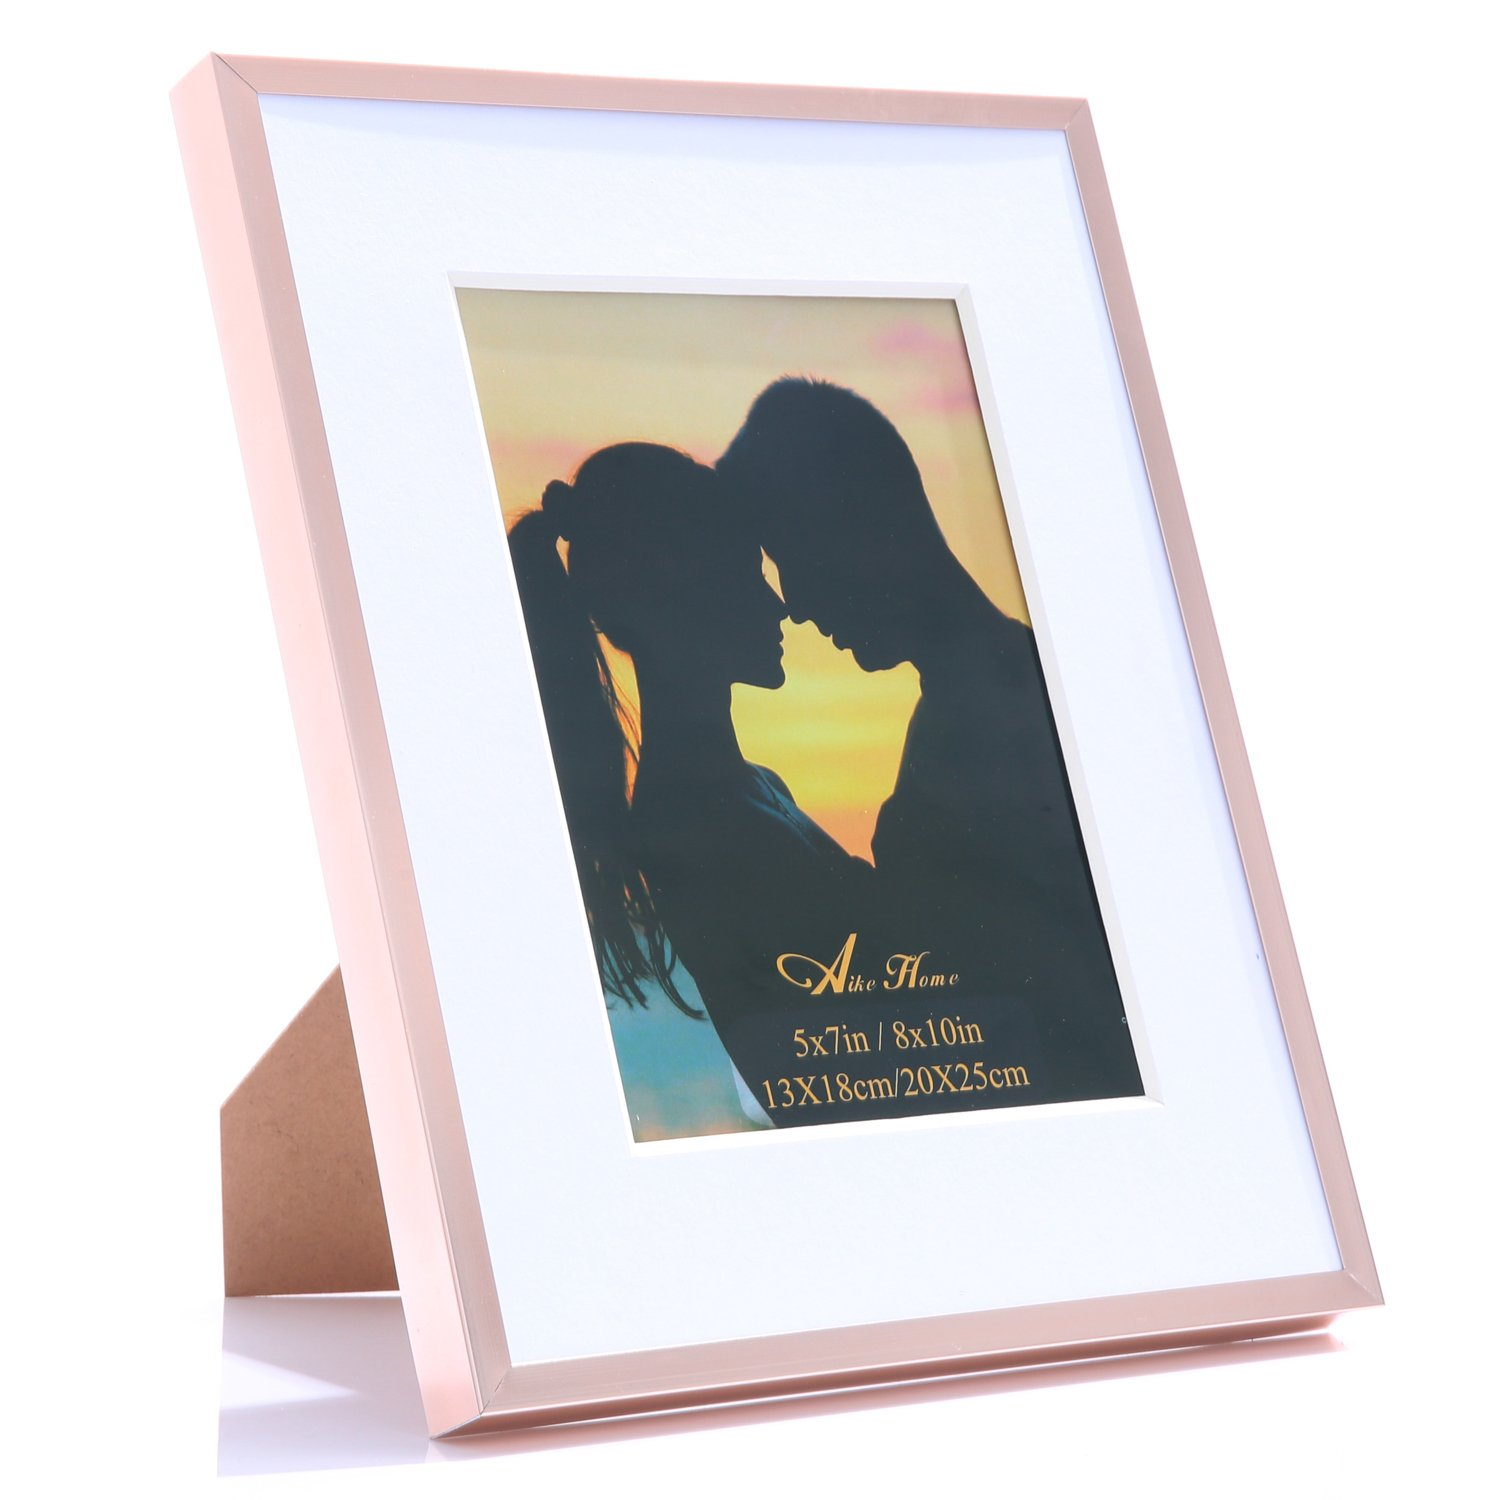 Aike Home Metal Picture Photo Frame Collection Aluminum Rose Gold Color 8x10 Inch Size with White Color Bevel 2MM Thickness Mat 5x7 Inch Opening Plexiglass